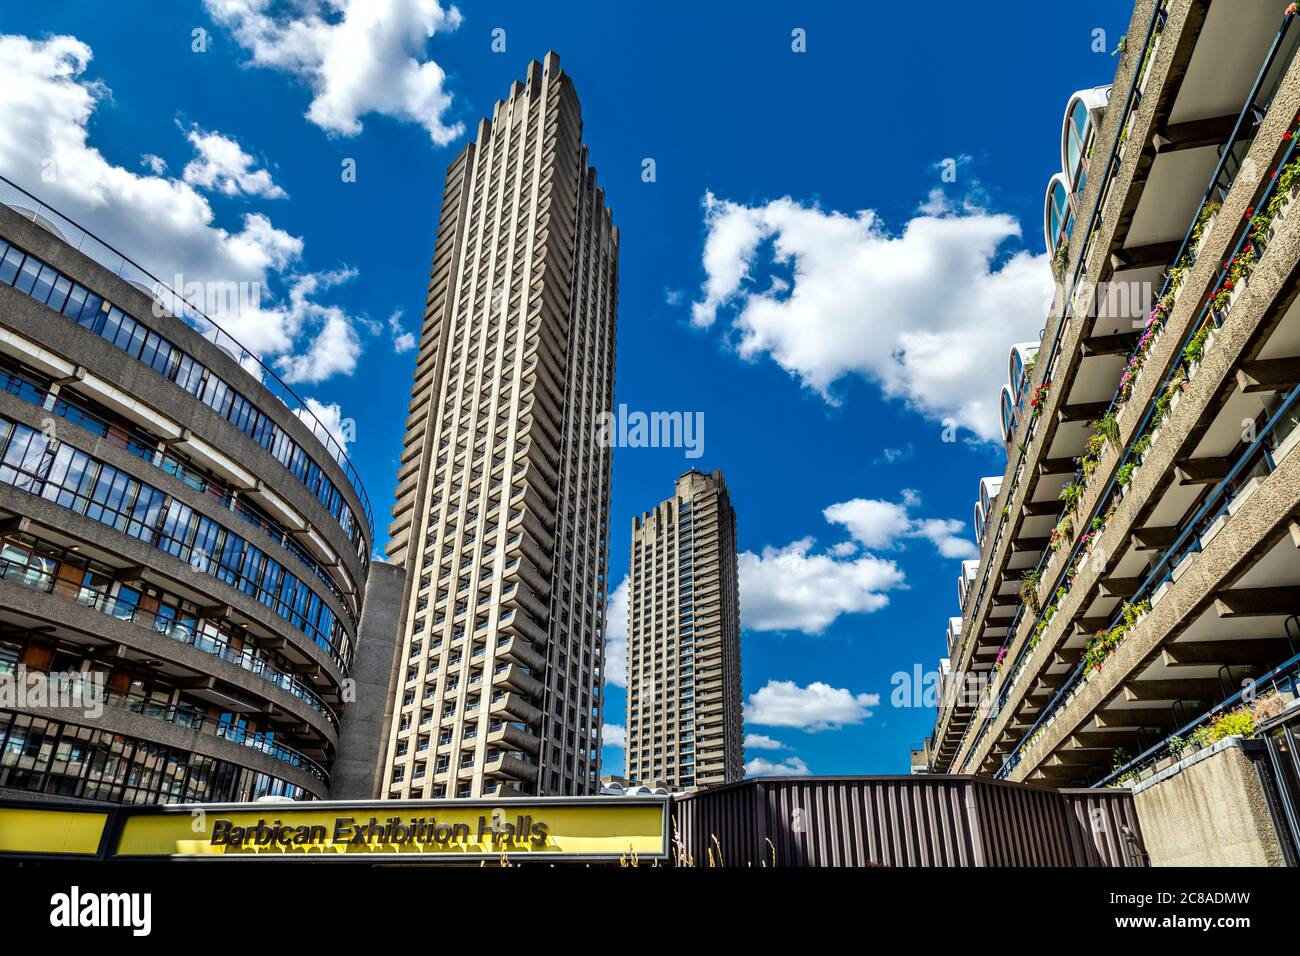 Residential high-rise blocks Shakespeare Tower and Lauderdale Tower, Frobisher Crescent and Ben Jonson House at brutalist Barbican Estate, London, UK Stock Photo